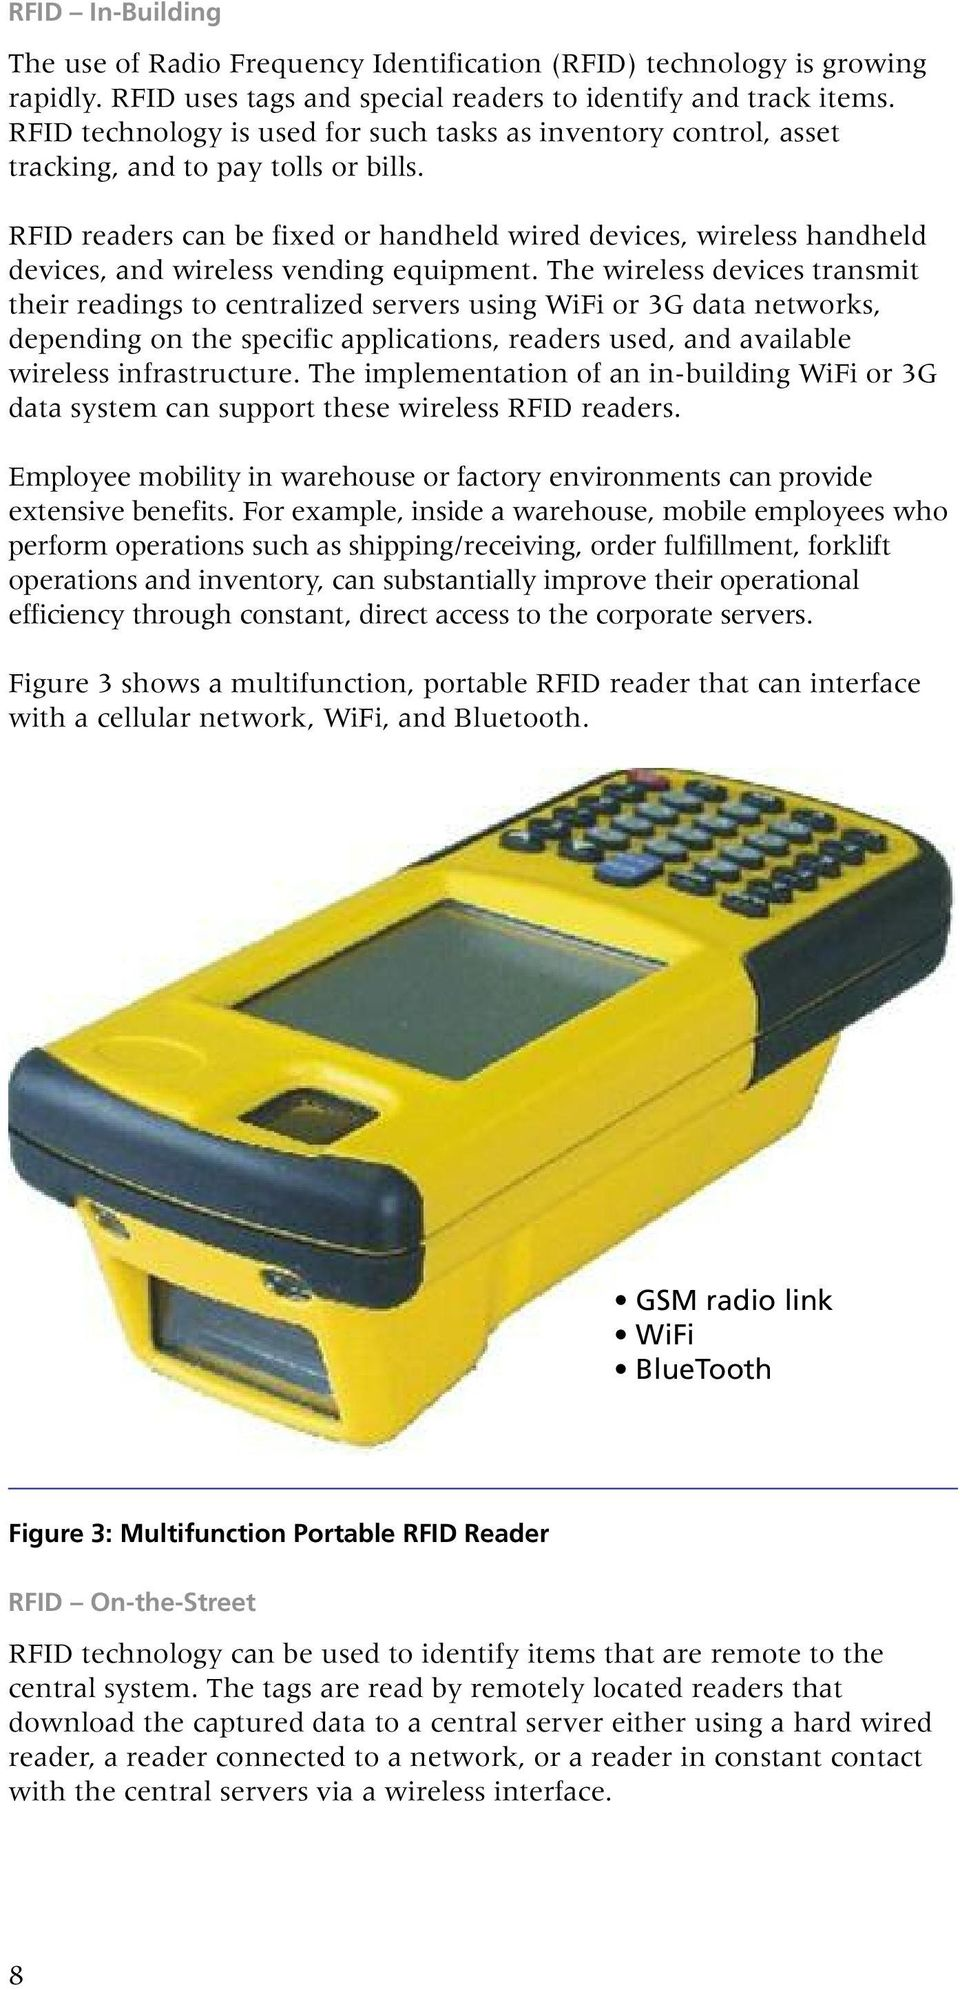 RFID readers can be fixed or handheld wired devices, wireless handheld devices, and wireless vending equipment.